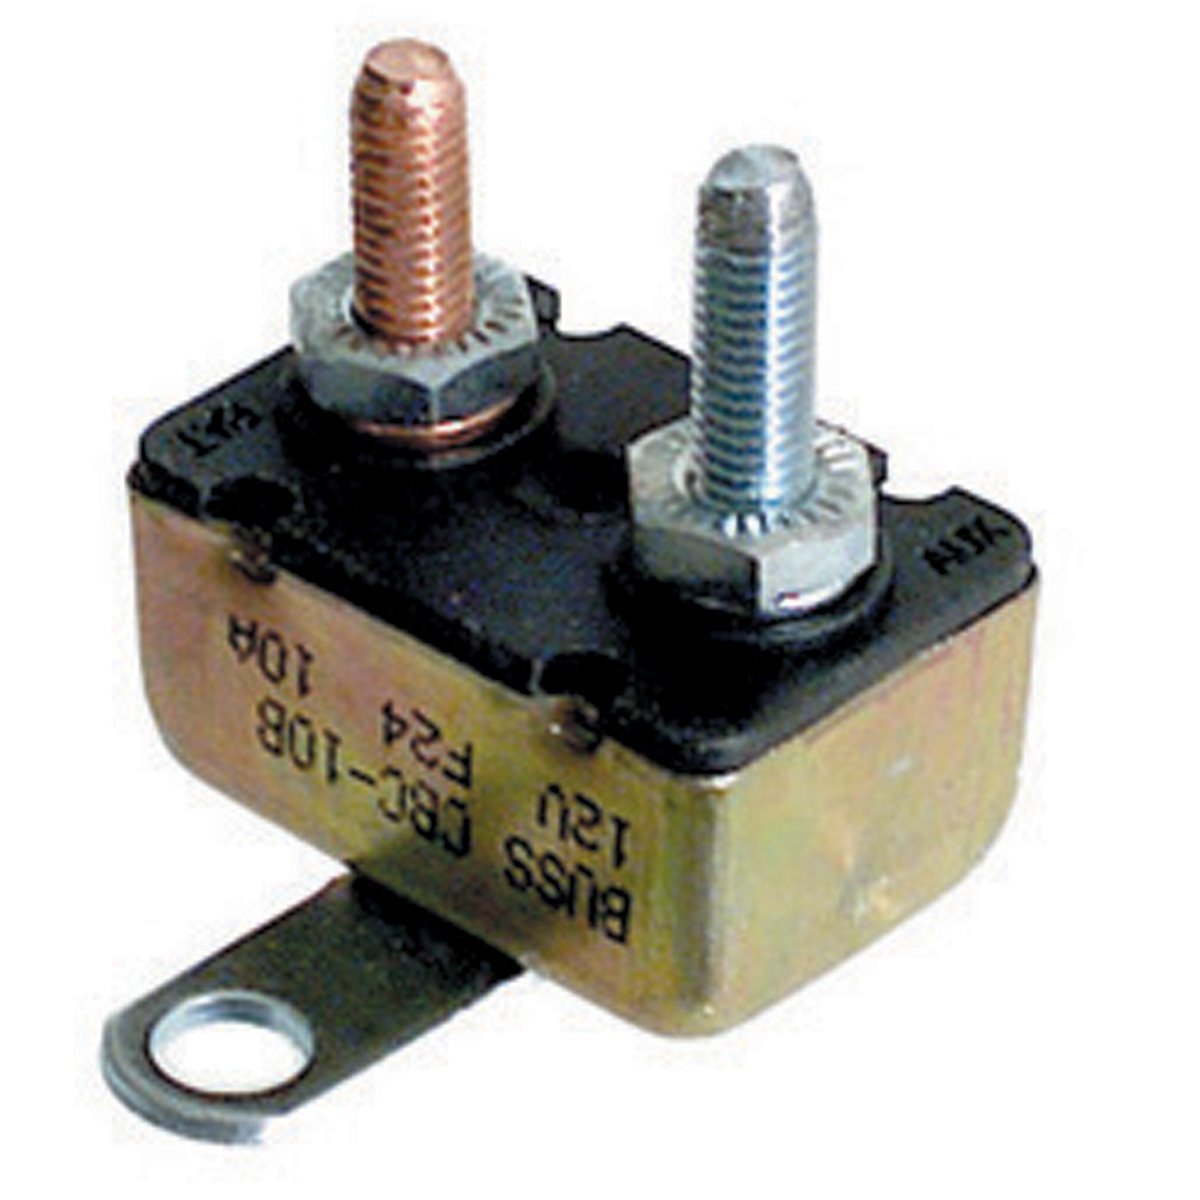 10 Amp 14 Volt Dc 1.5 Ka At 14 Volt Dc #10-32 Stud Thermoplastic With Steel Metal Cover Type I Auto Reset Automotive Circuit Breaker With Crosswise Bracket